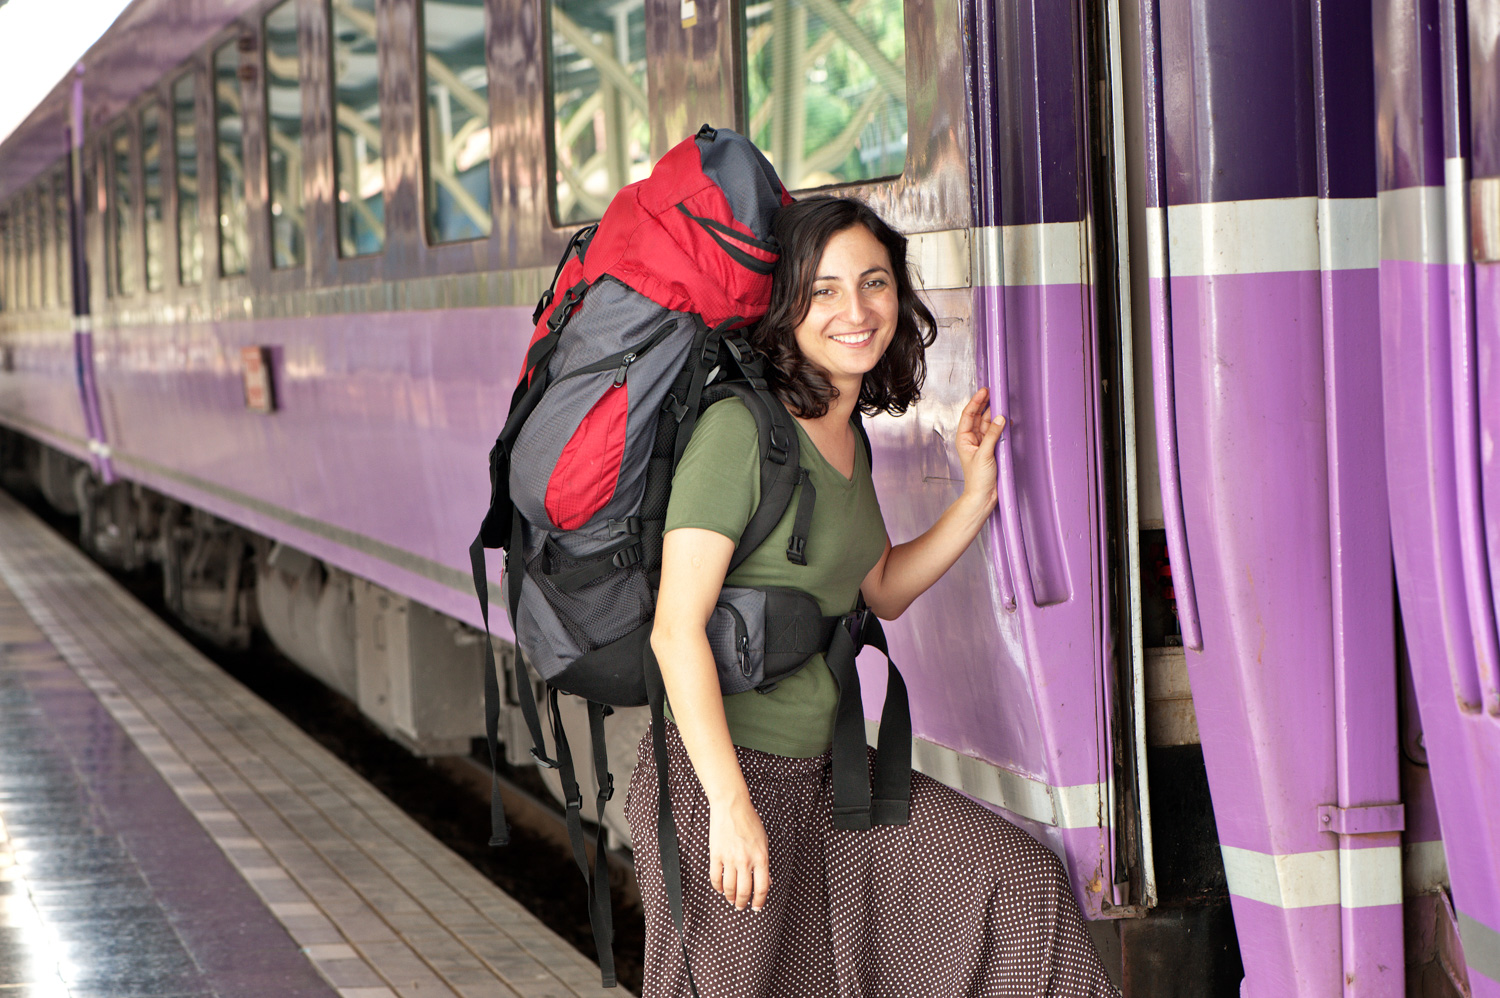 woman with a backpack getting on a train photo essay ideas